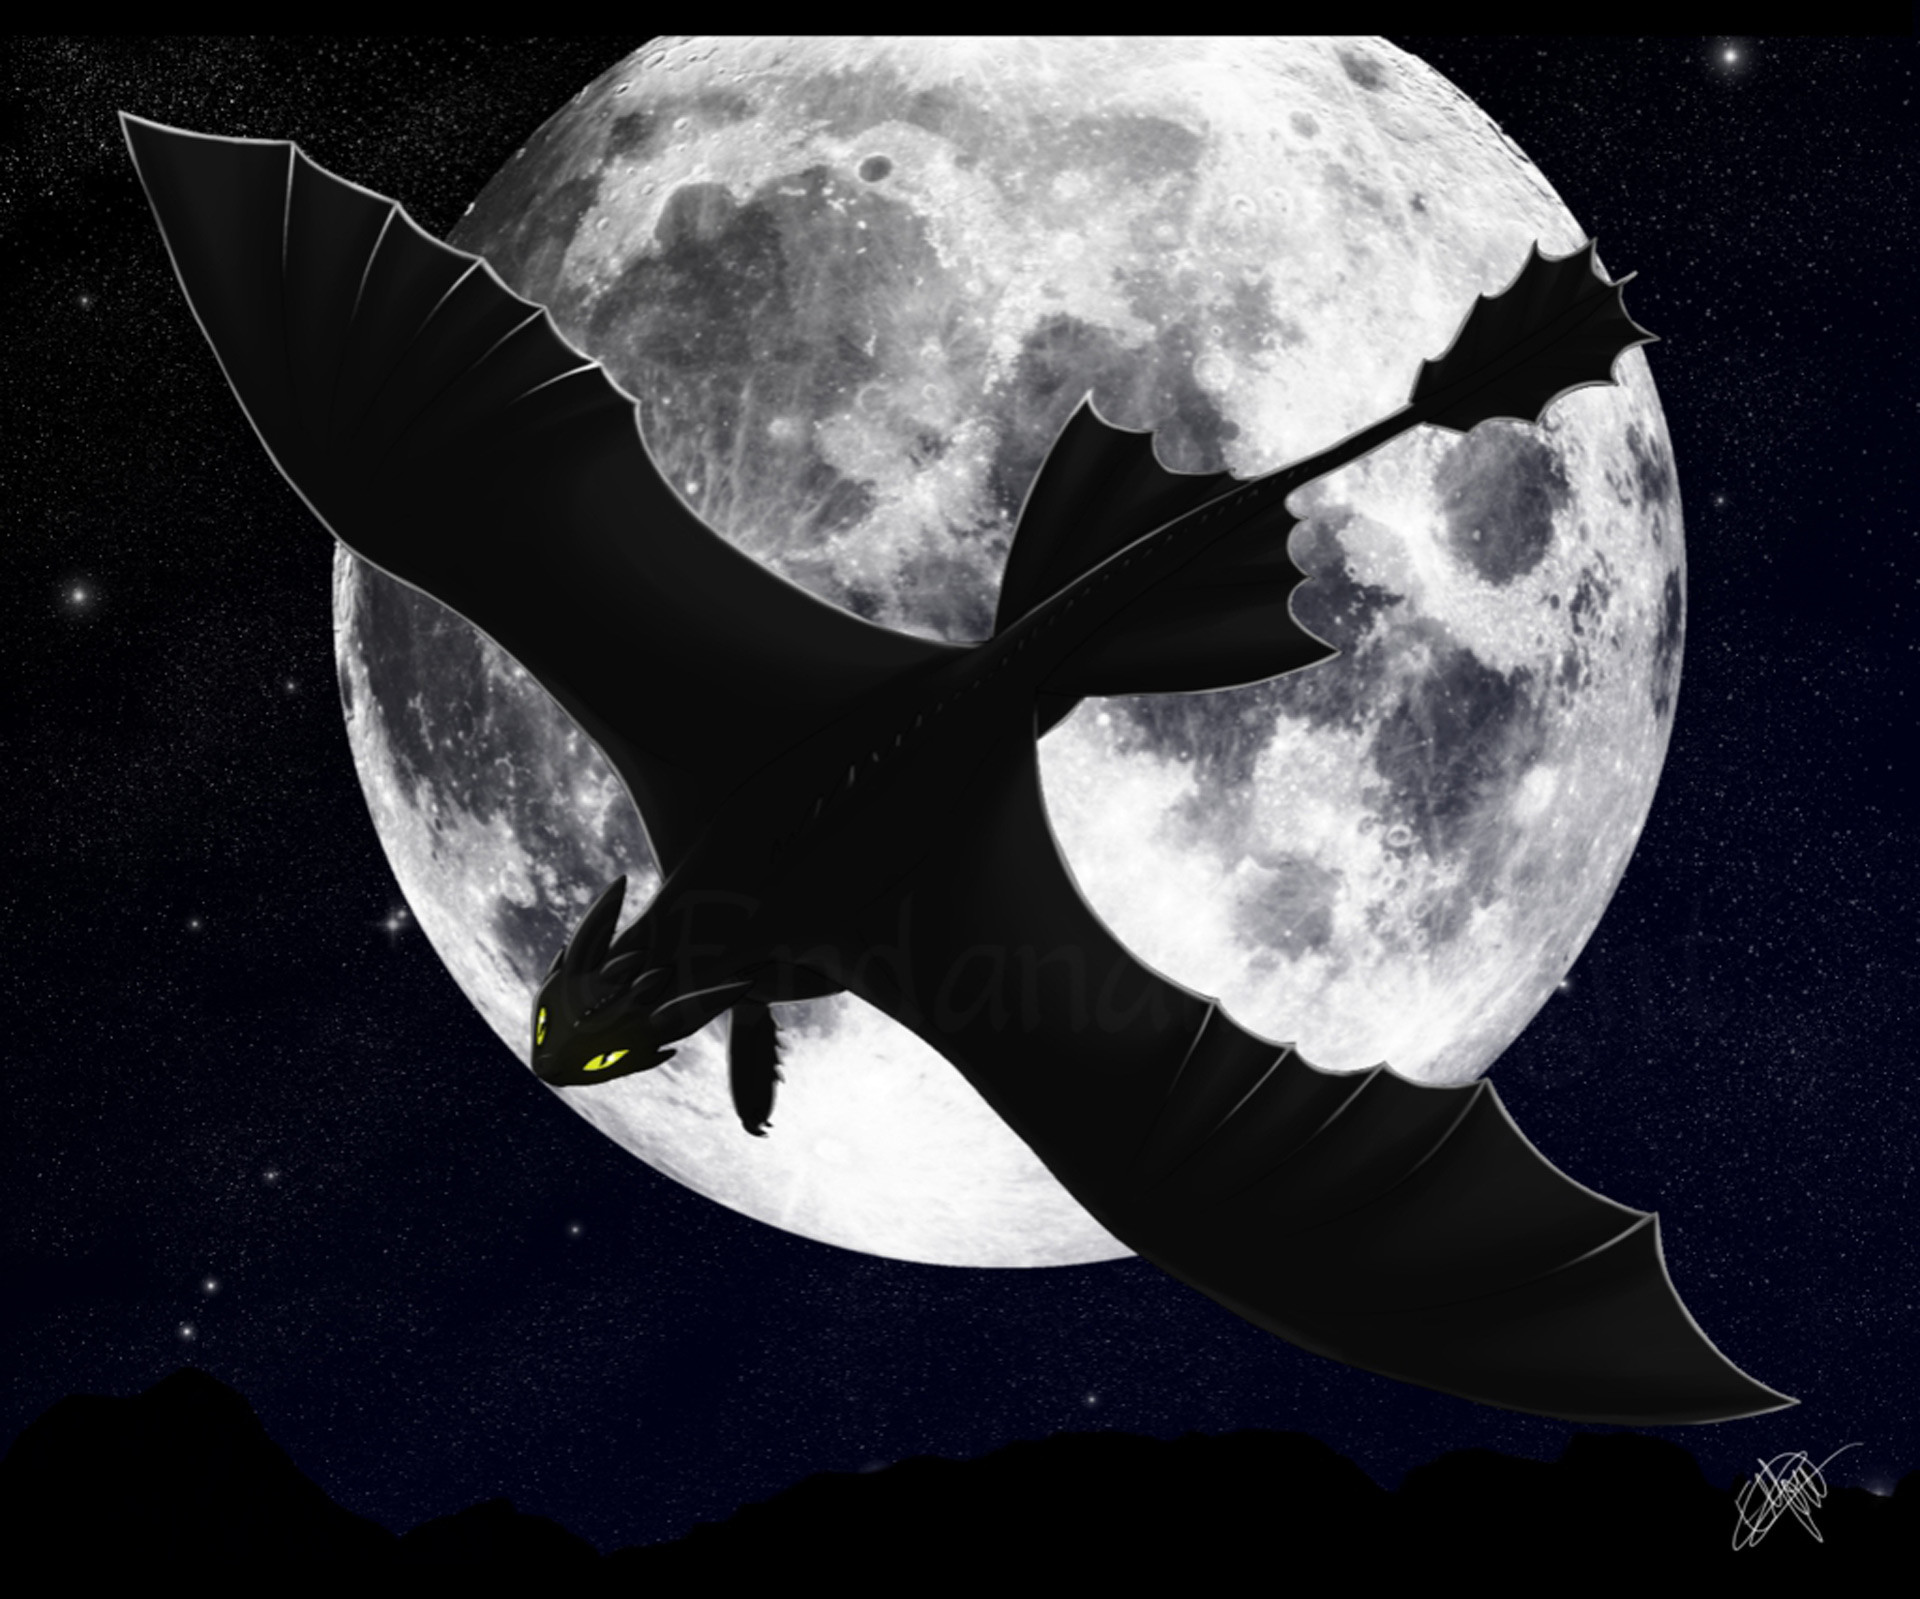 Toothless Nightfury How to Train Your Dragon 2 Character Wallpapers